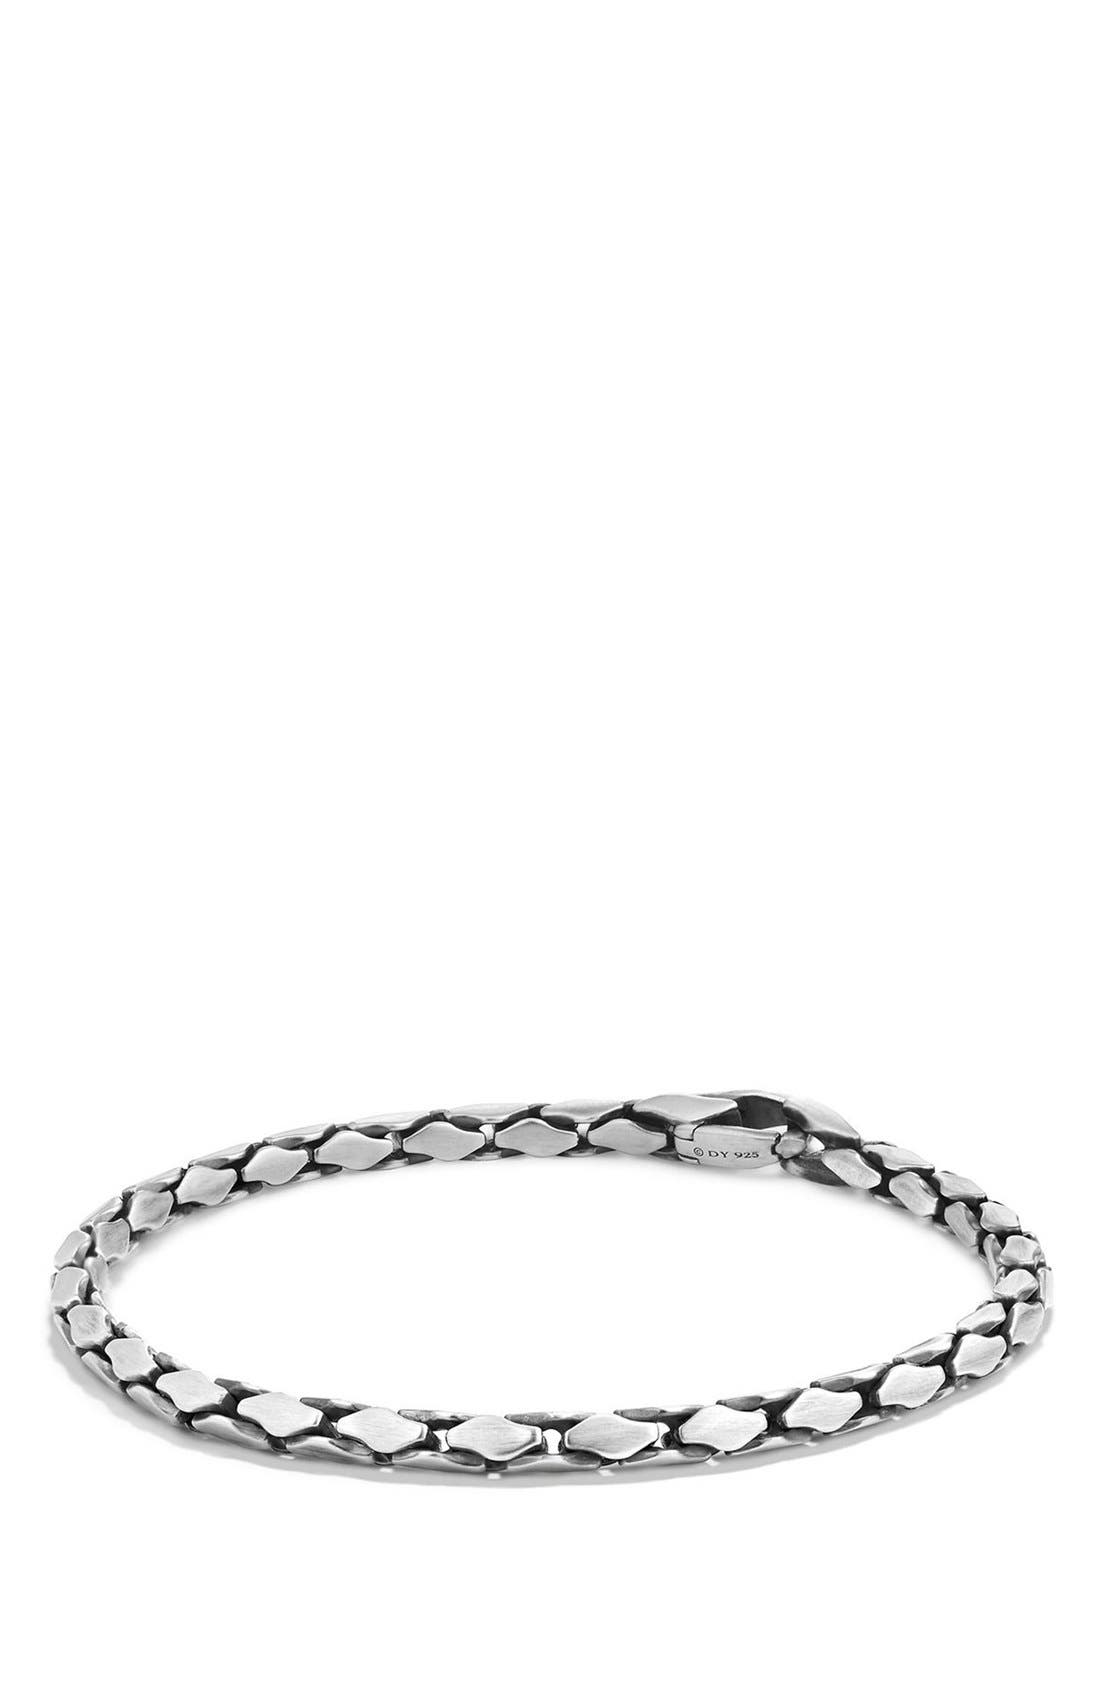 Main Image - David Yurman 'Chain' Small Fluted Chain Bracelet